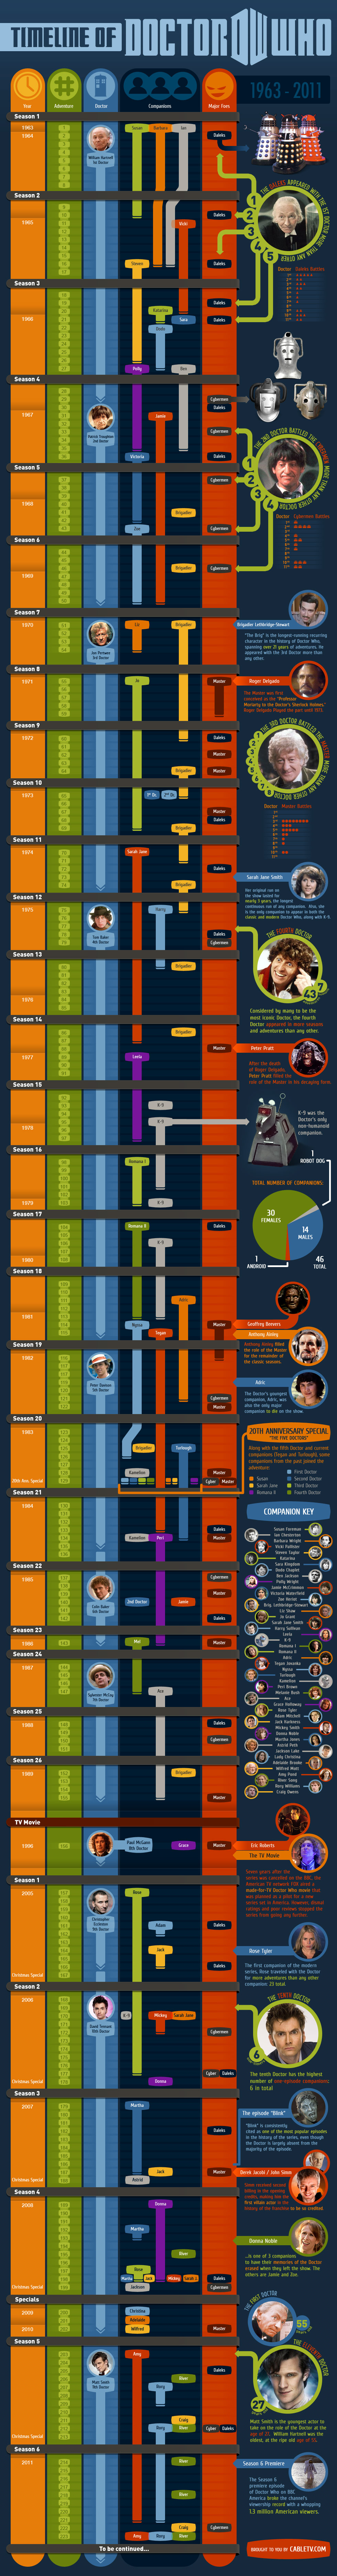 The Timeline of Doctor Who infographic